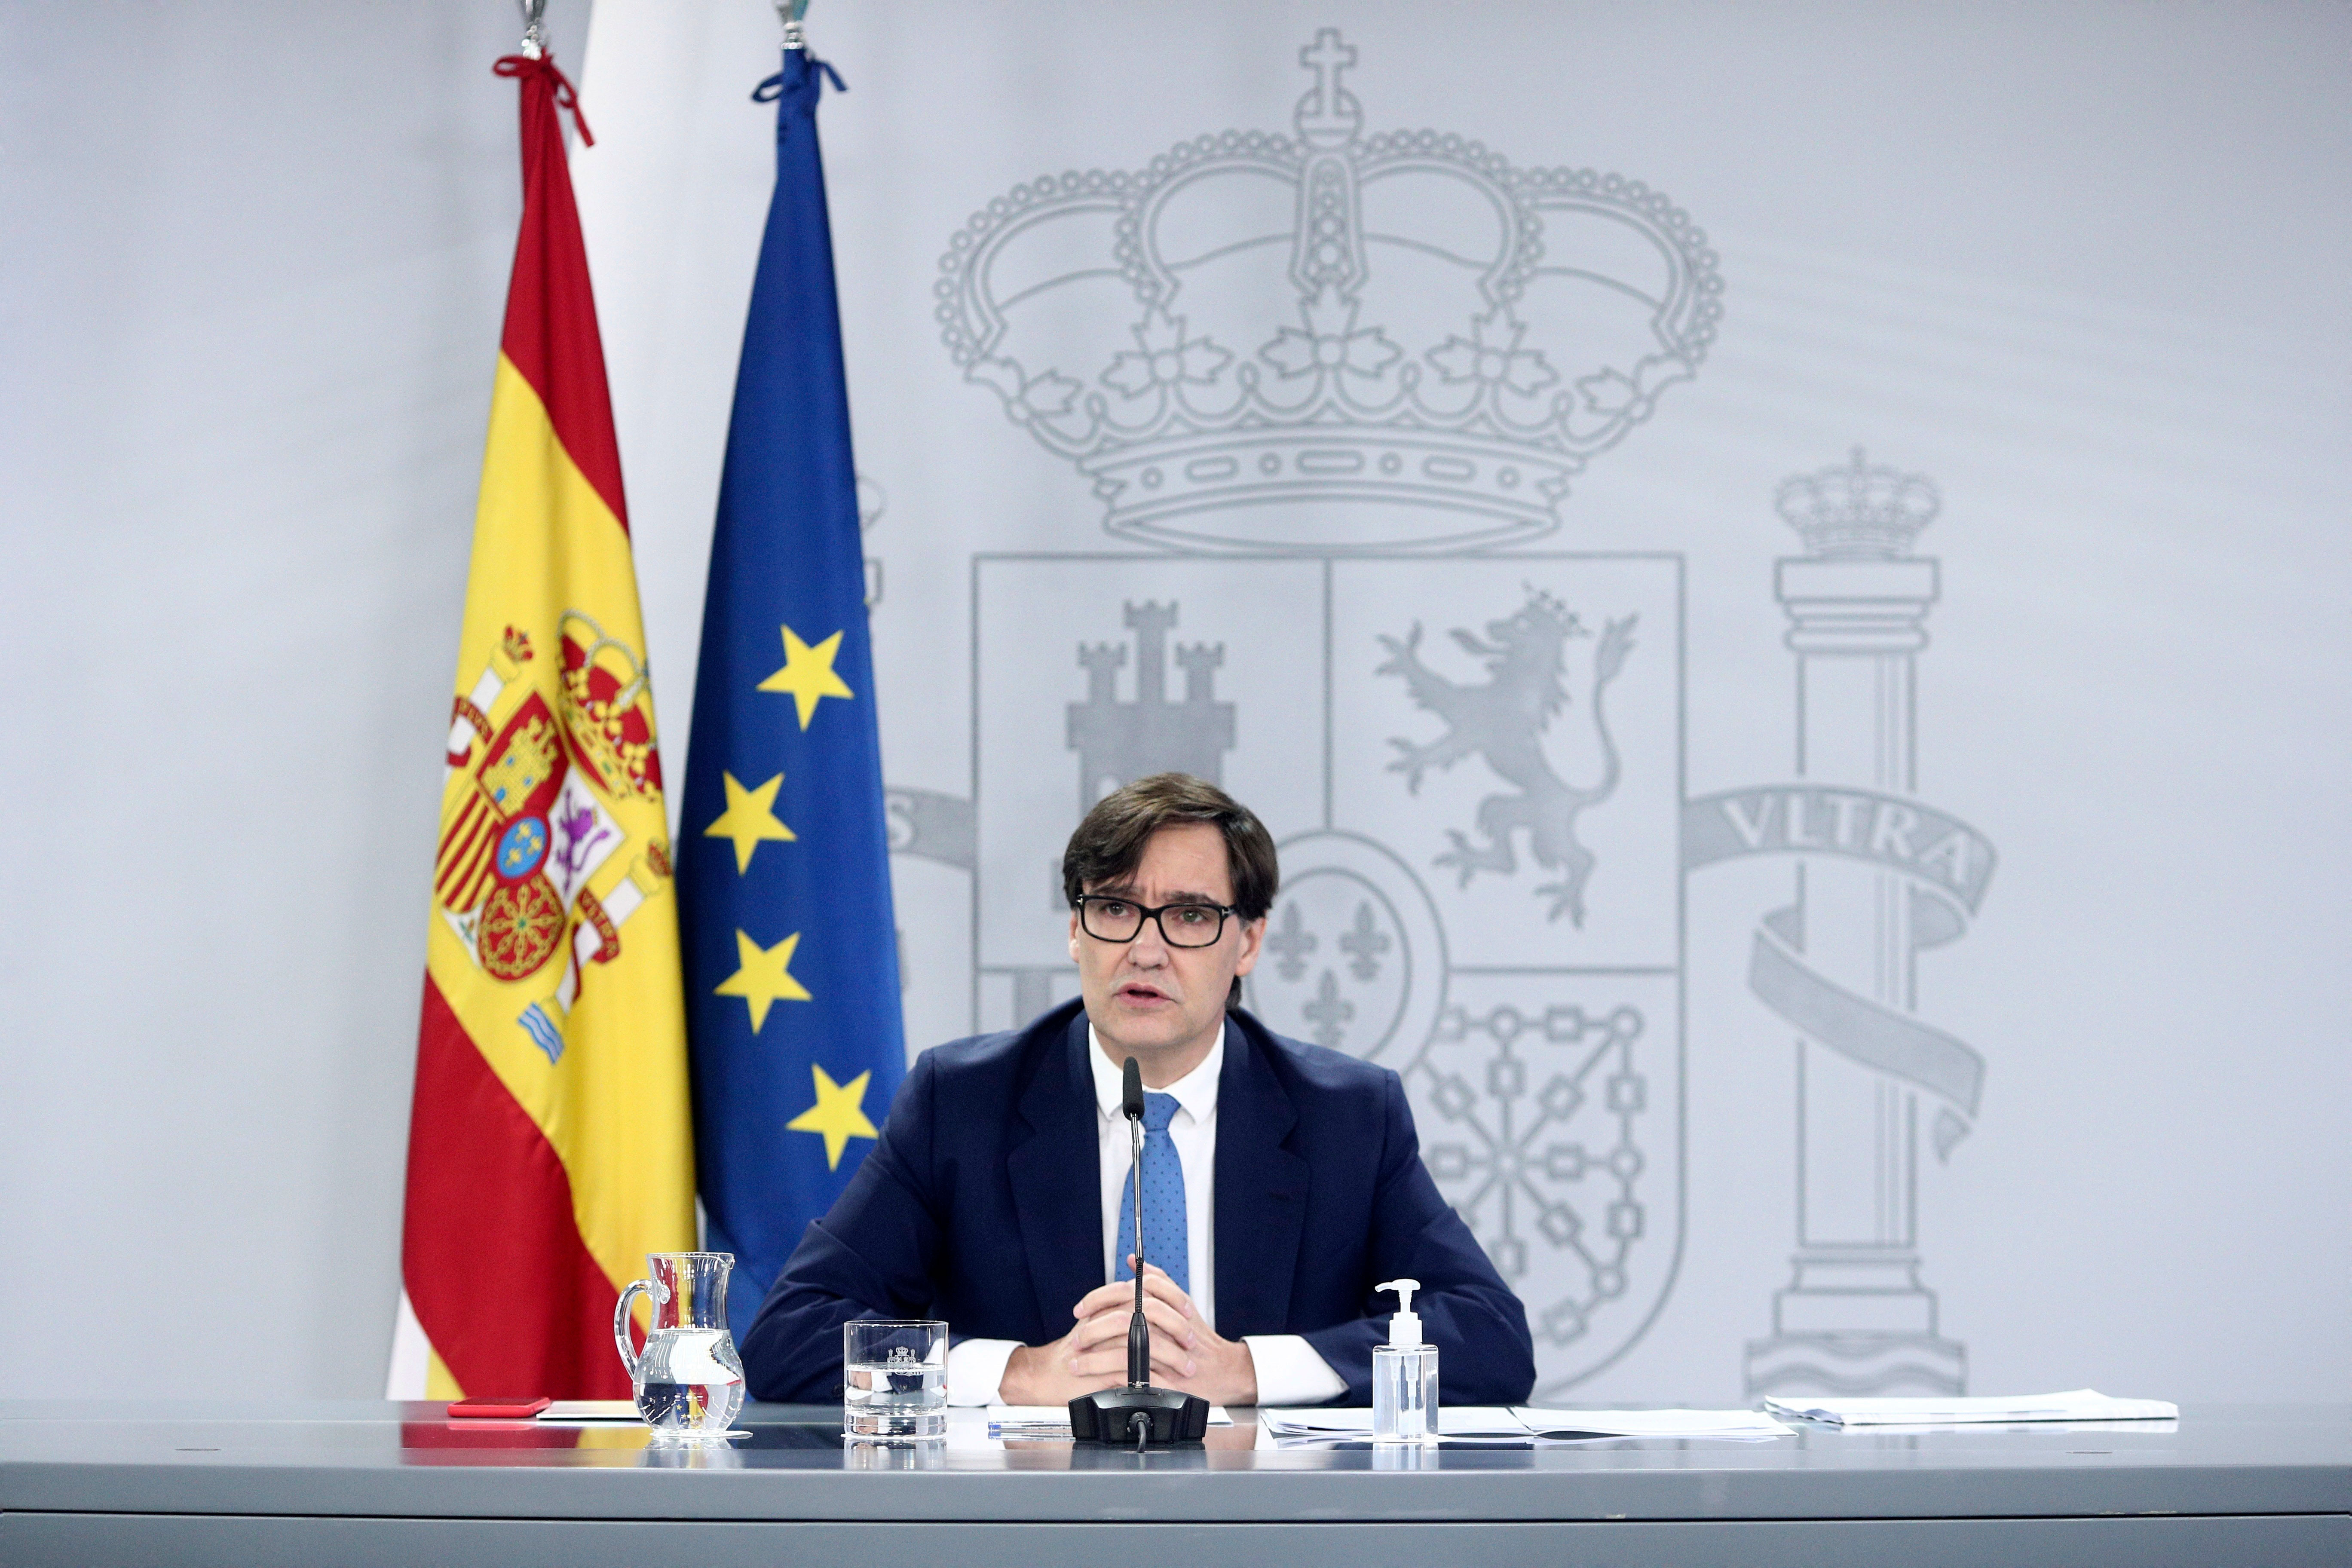 Salvador Illa, Spain's health minister, speaks at a press conference in Madrid on November 27.